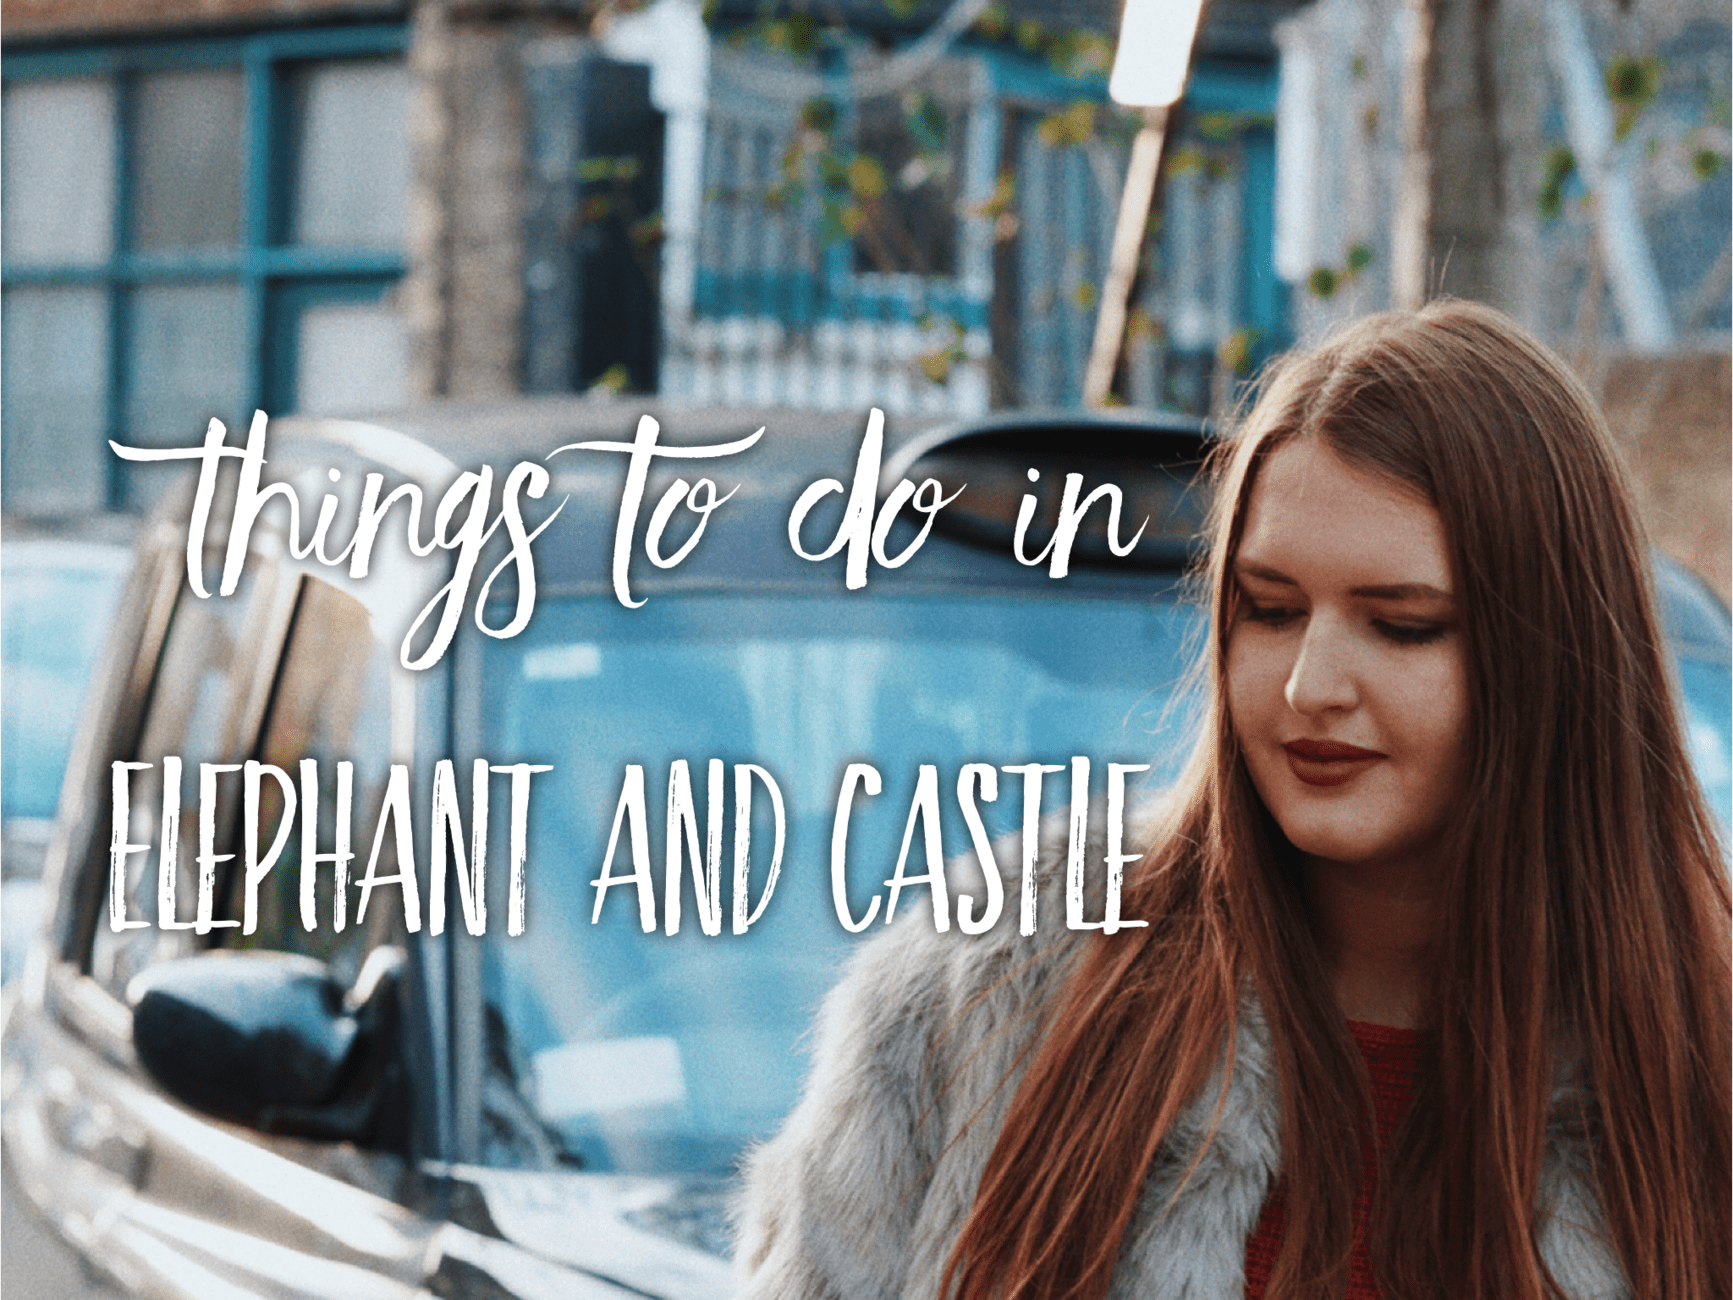 Things to do in Elephant and Castle   Tripsget Blog London